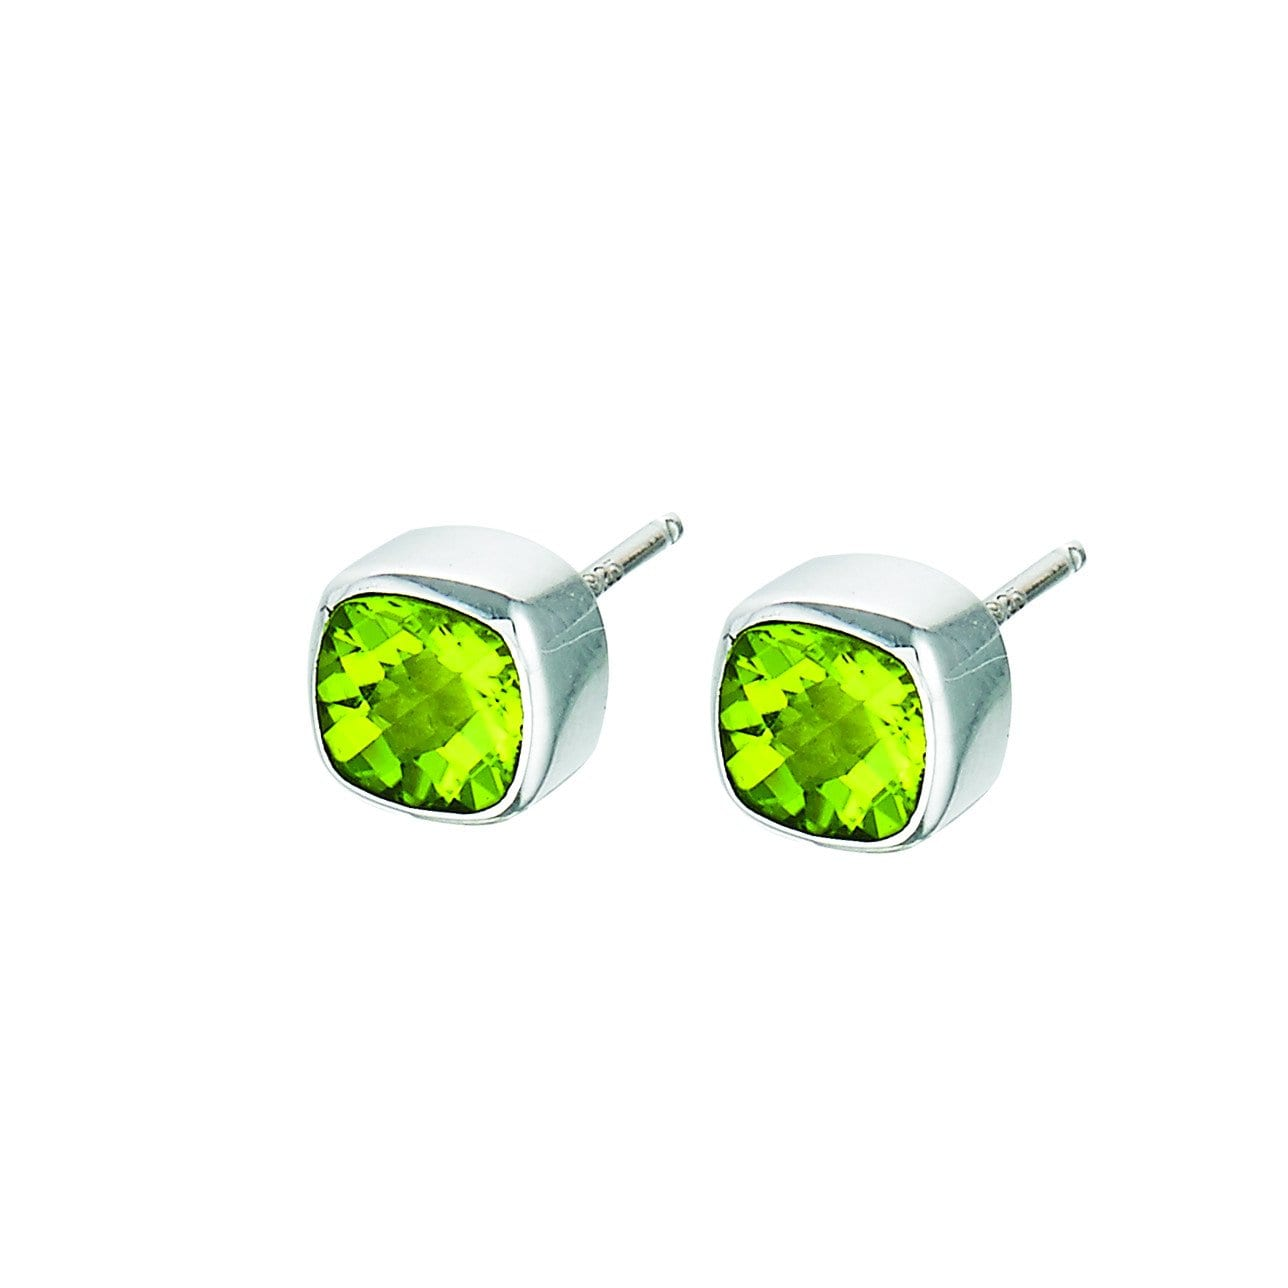 Sku 21567 Categories Collections Plata Sterling Silver Earrings Tags 6mm Bezel Set Cushion Cut Peridot Ss